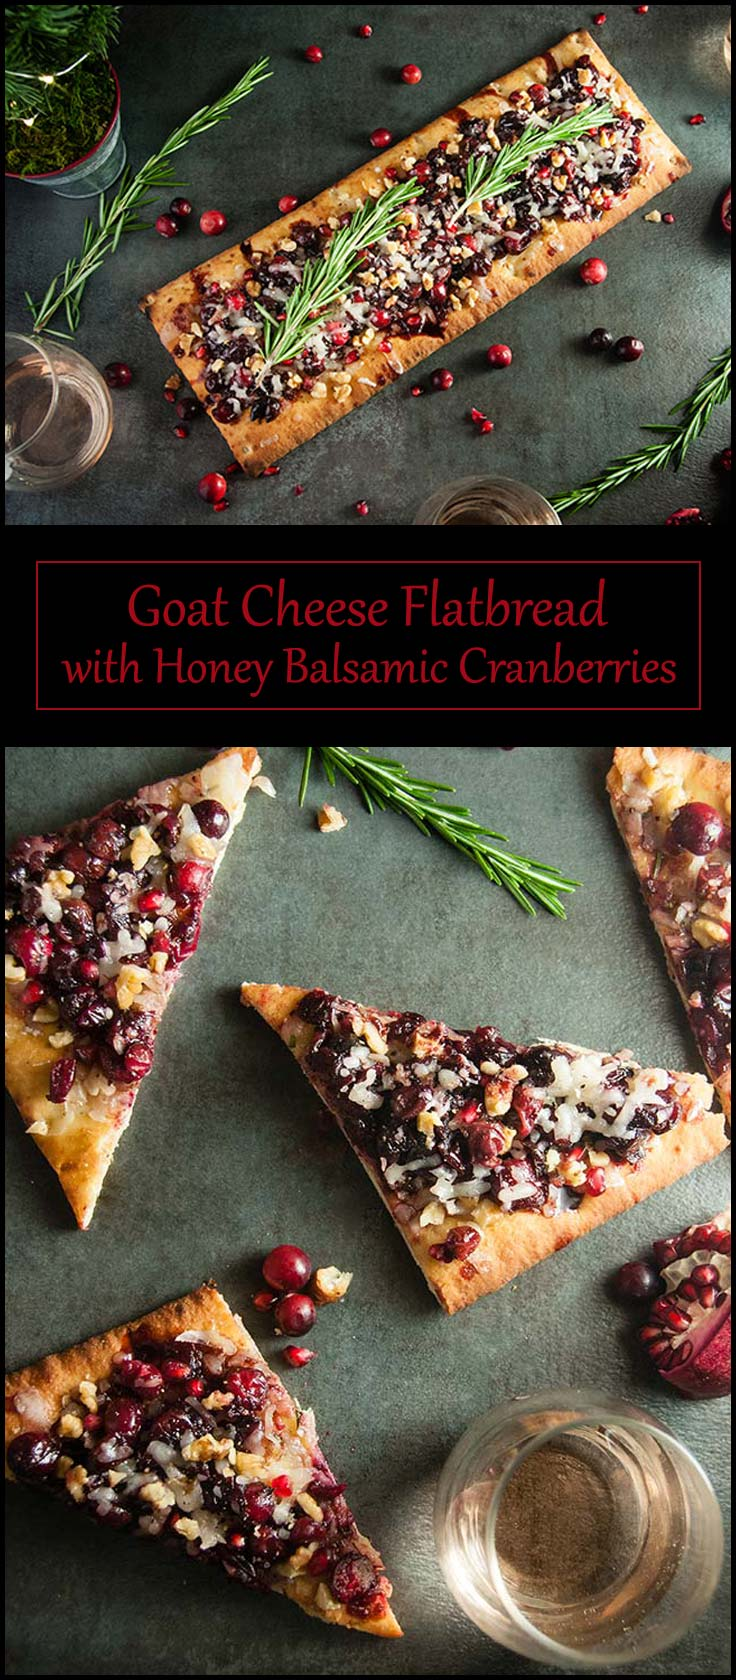 Holiday Goat Cheese Flatbread with Honey Balsamic Cranberries and Pomegranate from www.seasonedsprinkles.com